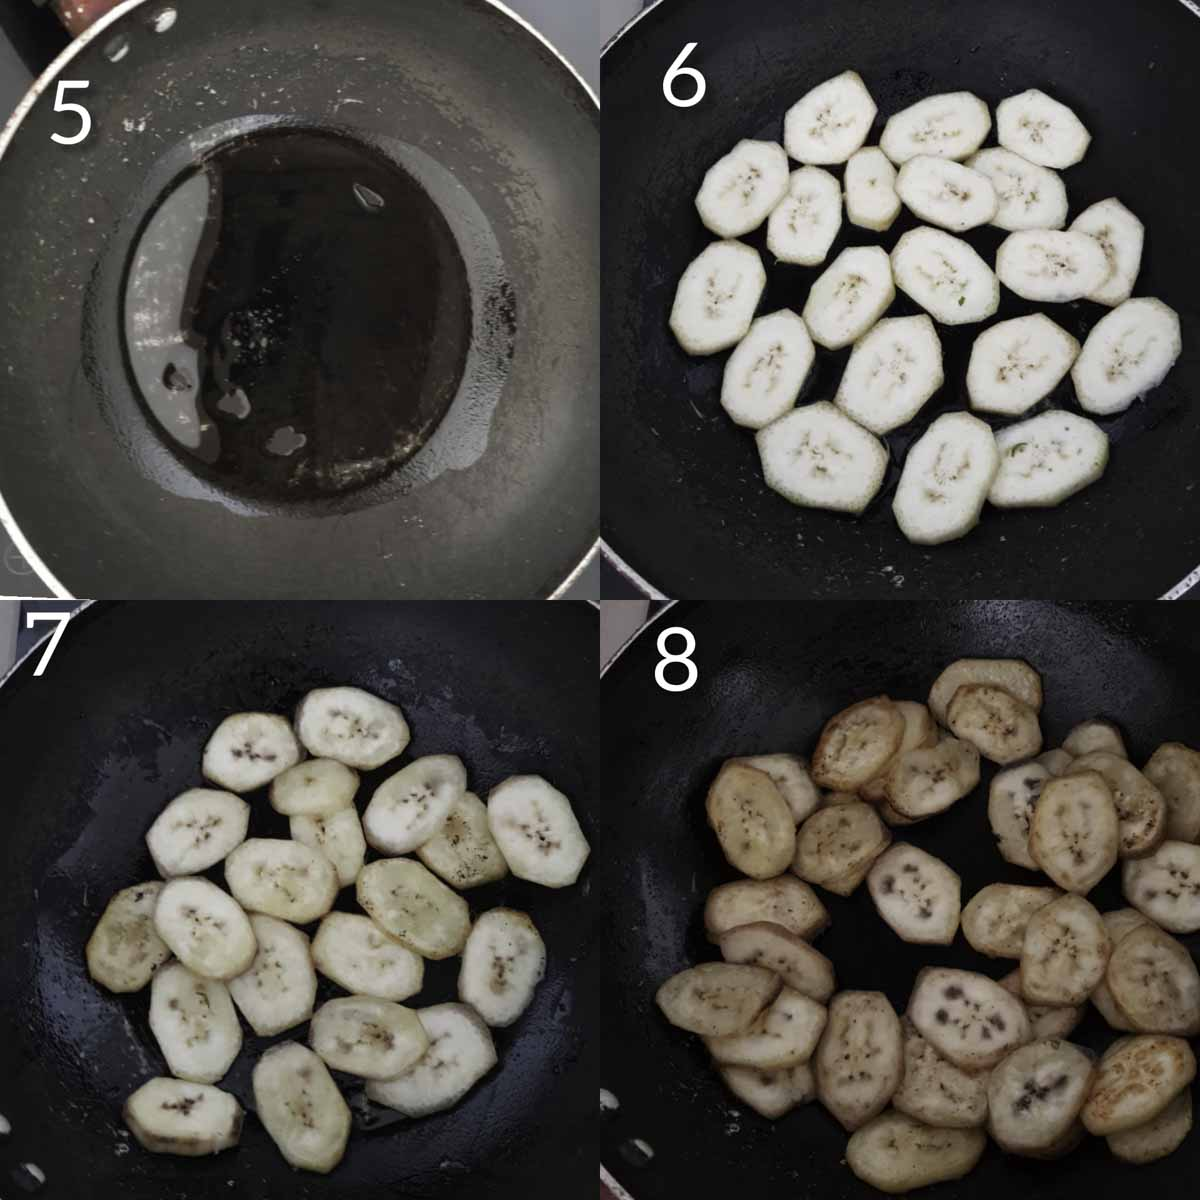 a collage of steps showing stir frying raw banana slices